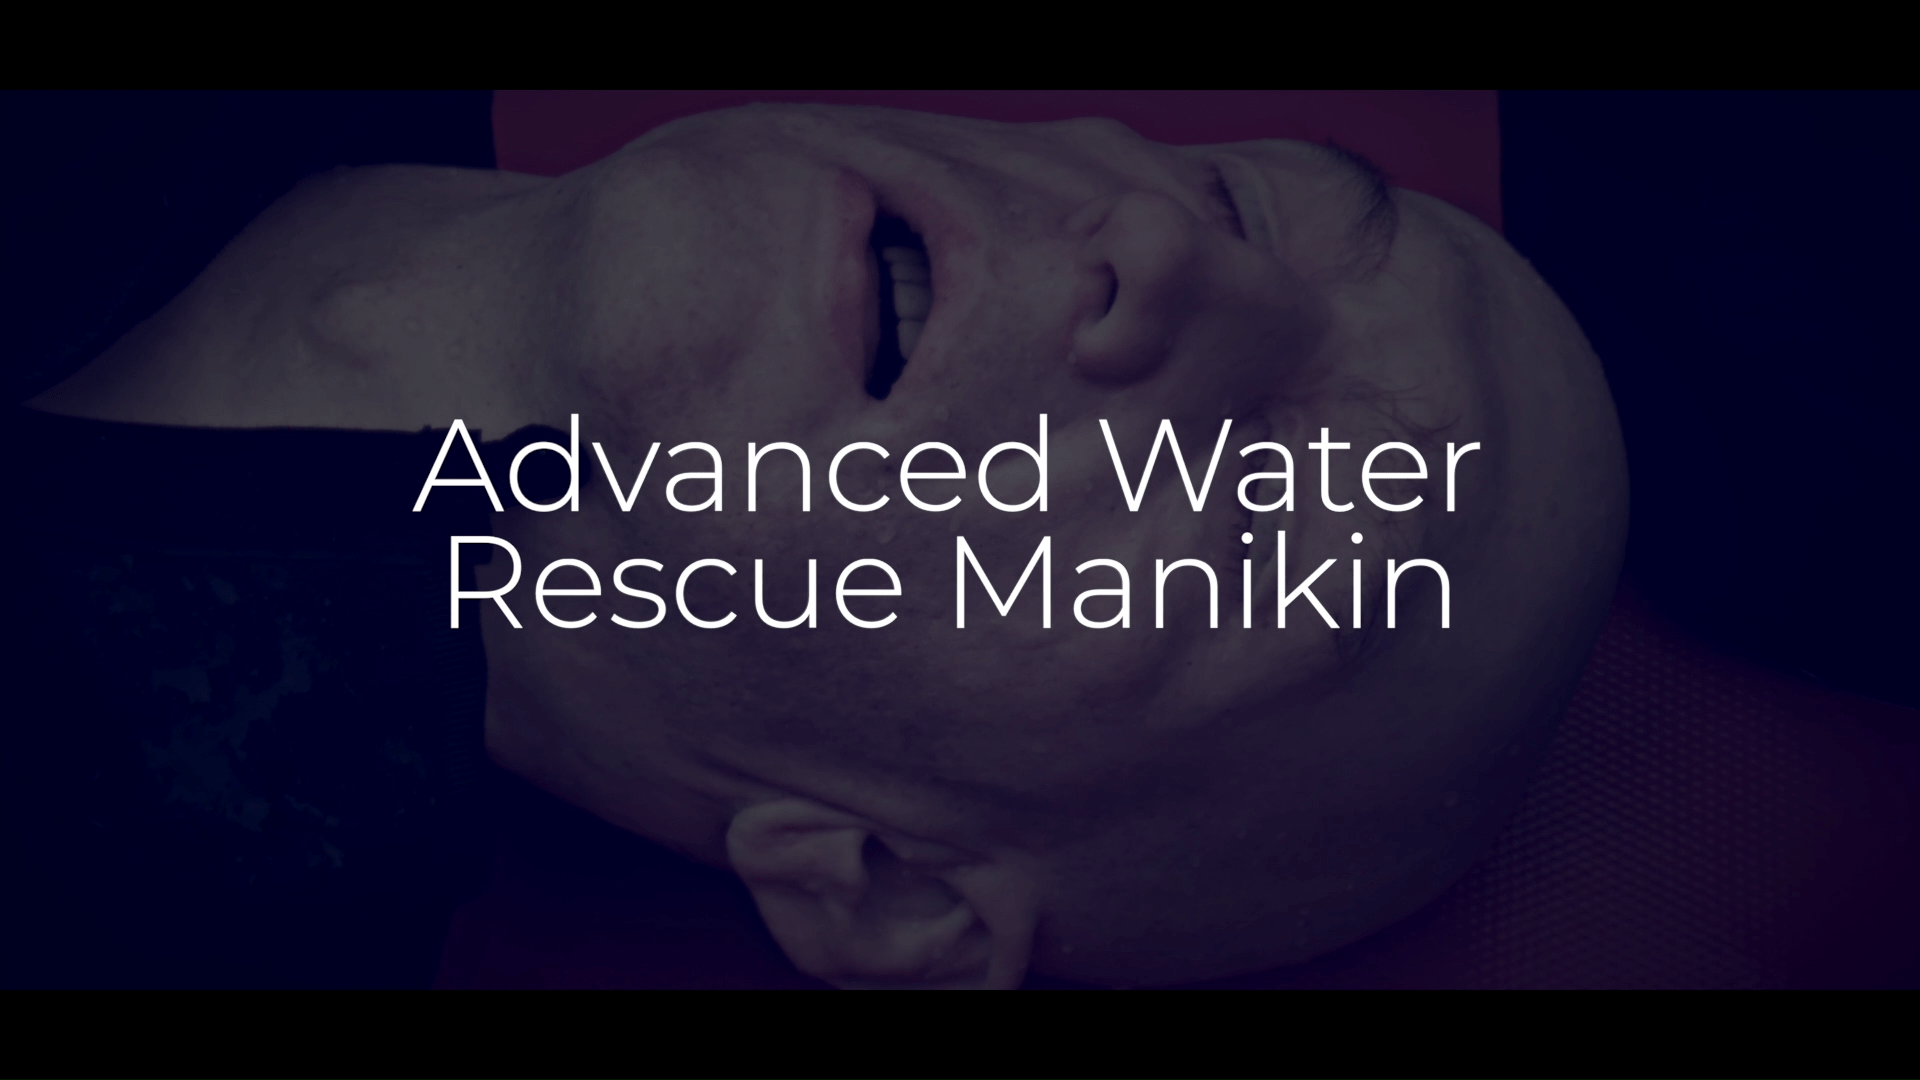 Advanced Water Rescue Manikin